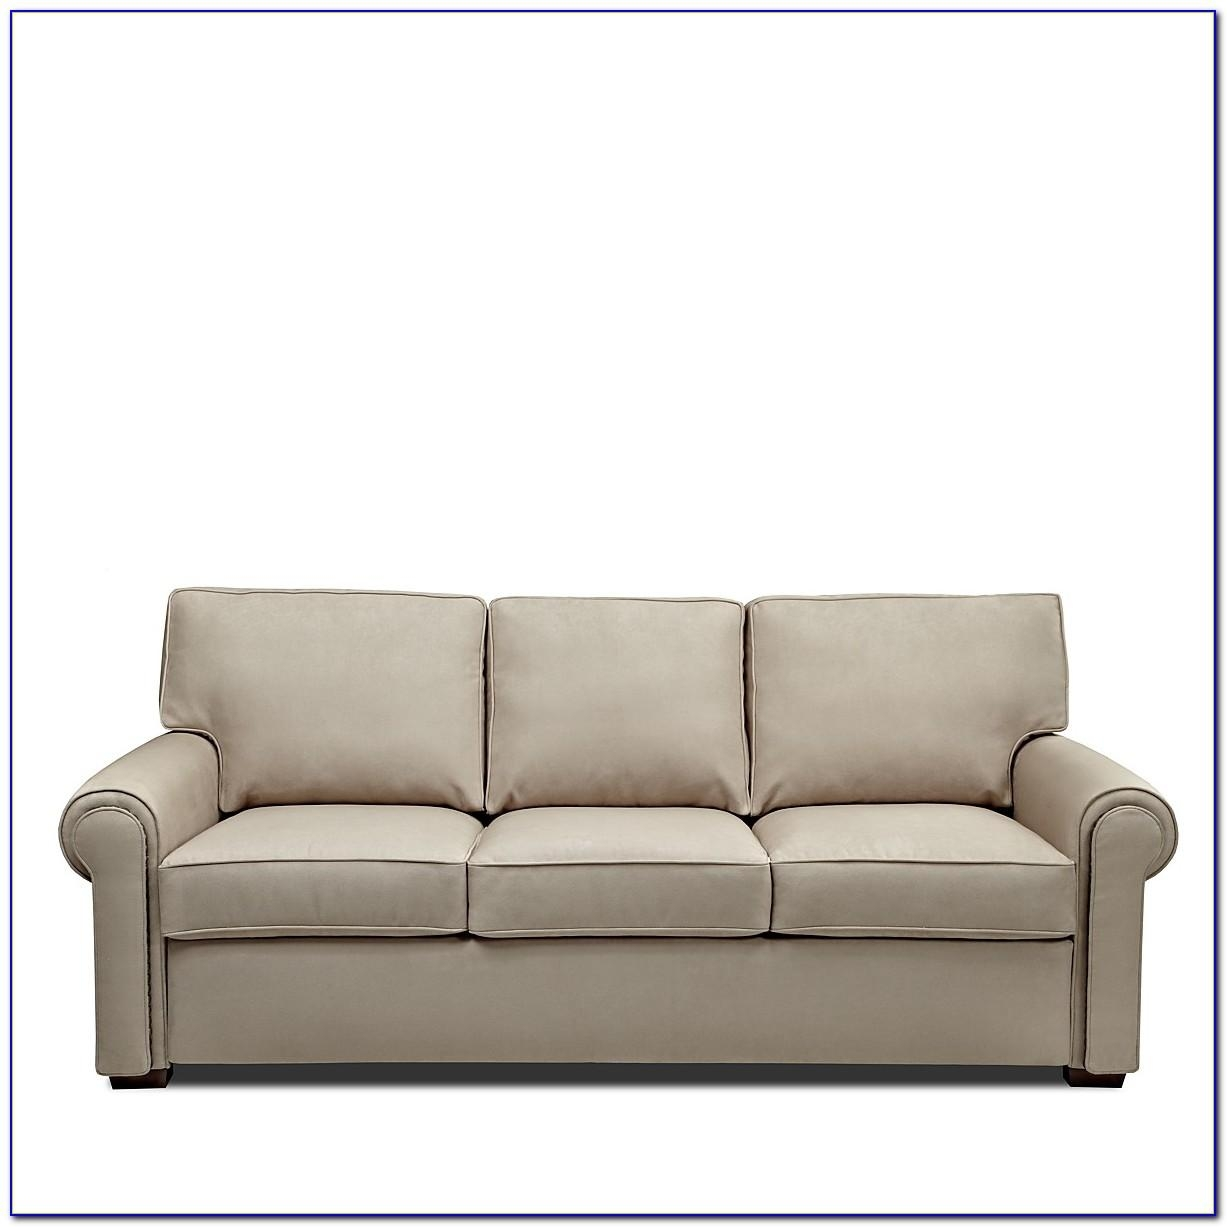 sleeper sofa tampa florida ex display sofas glasgow 20 top craigslist ideas